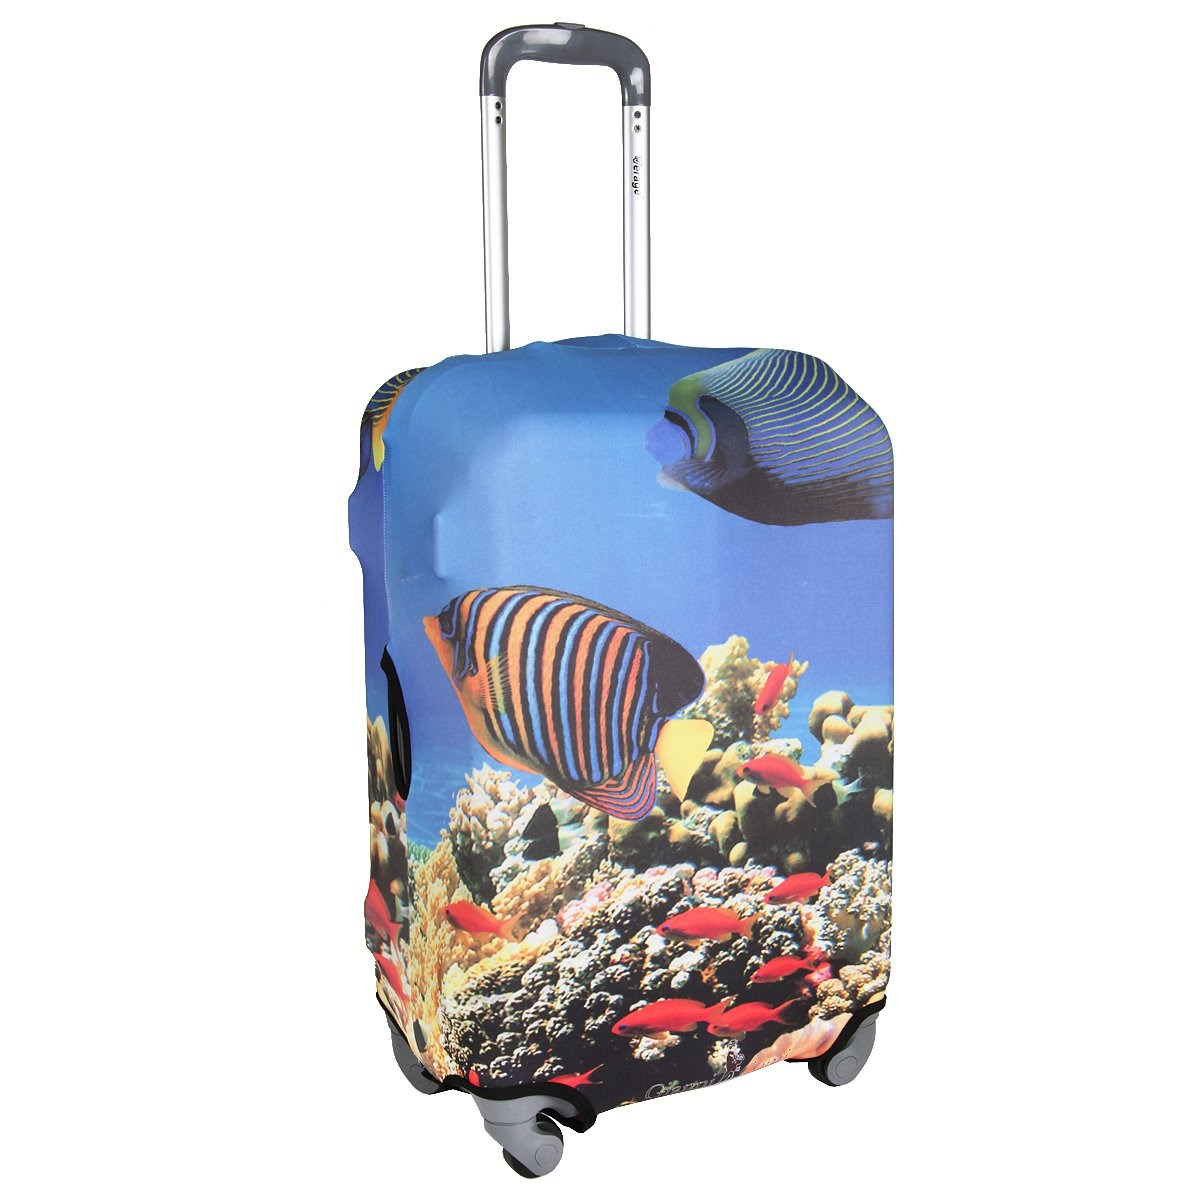 Protective cover for suitcase 9009 M protective cover for suitcase 9005 m